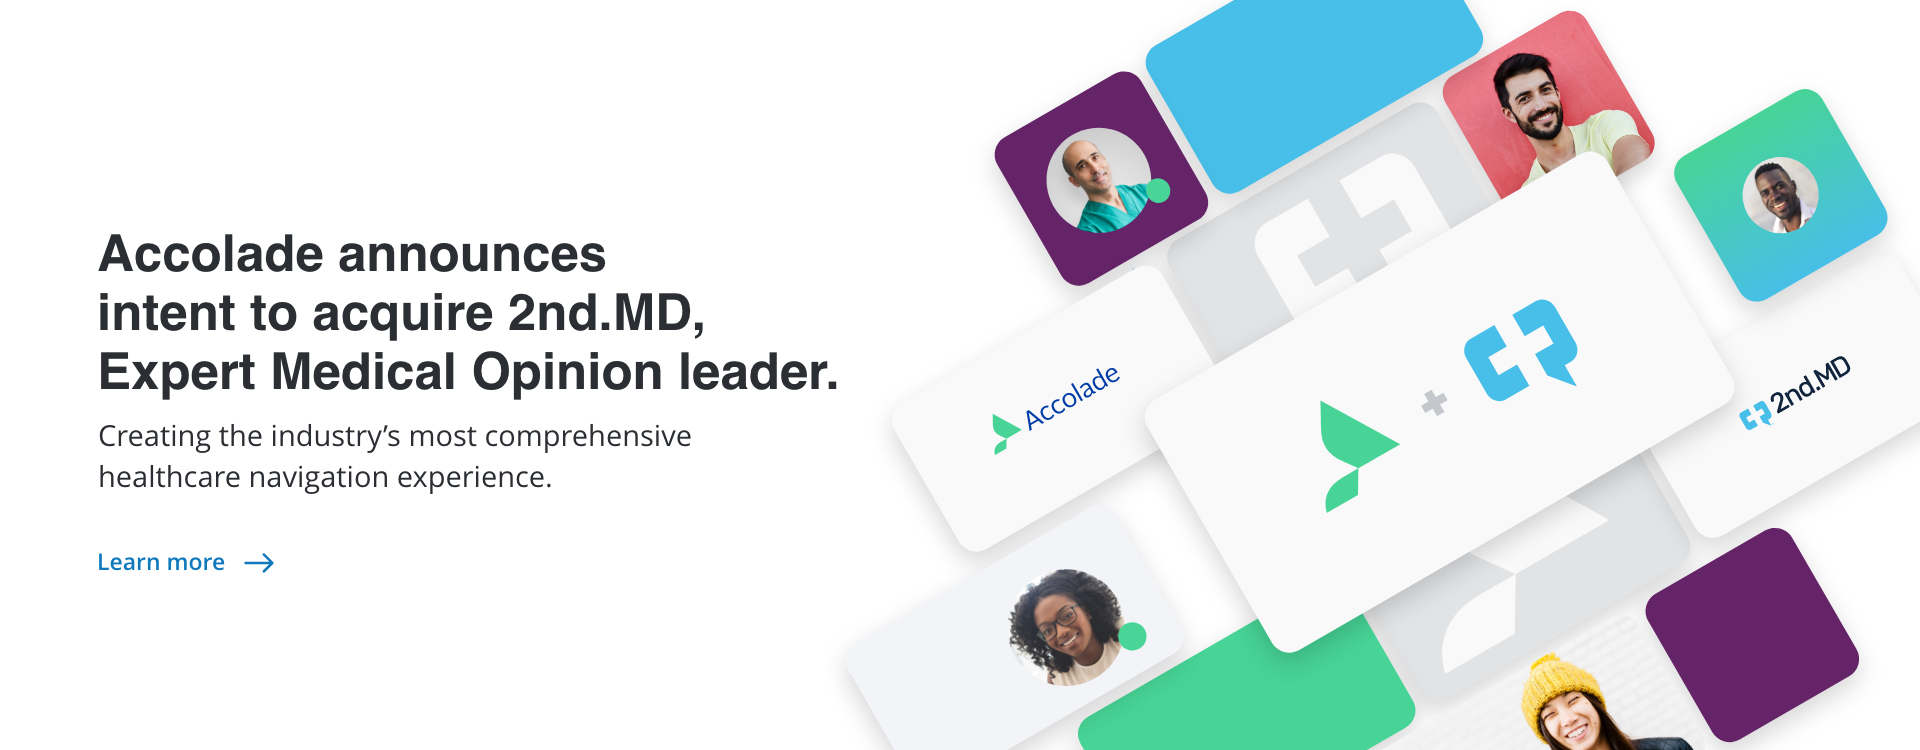 Accolade announces intent to acquire 2nd.MD, Expert Medical Opinion leader.